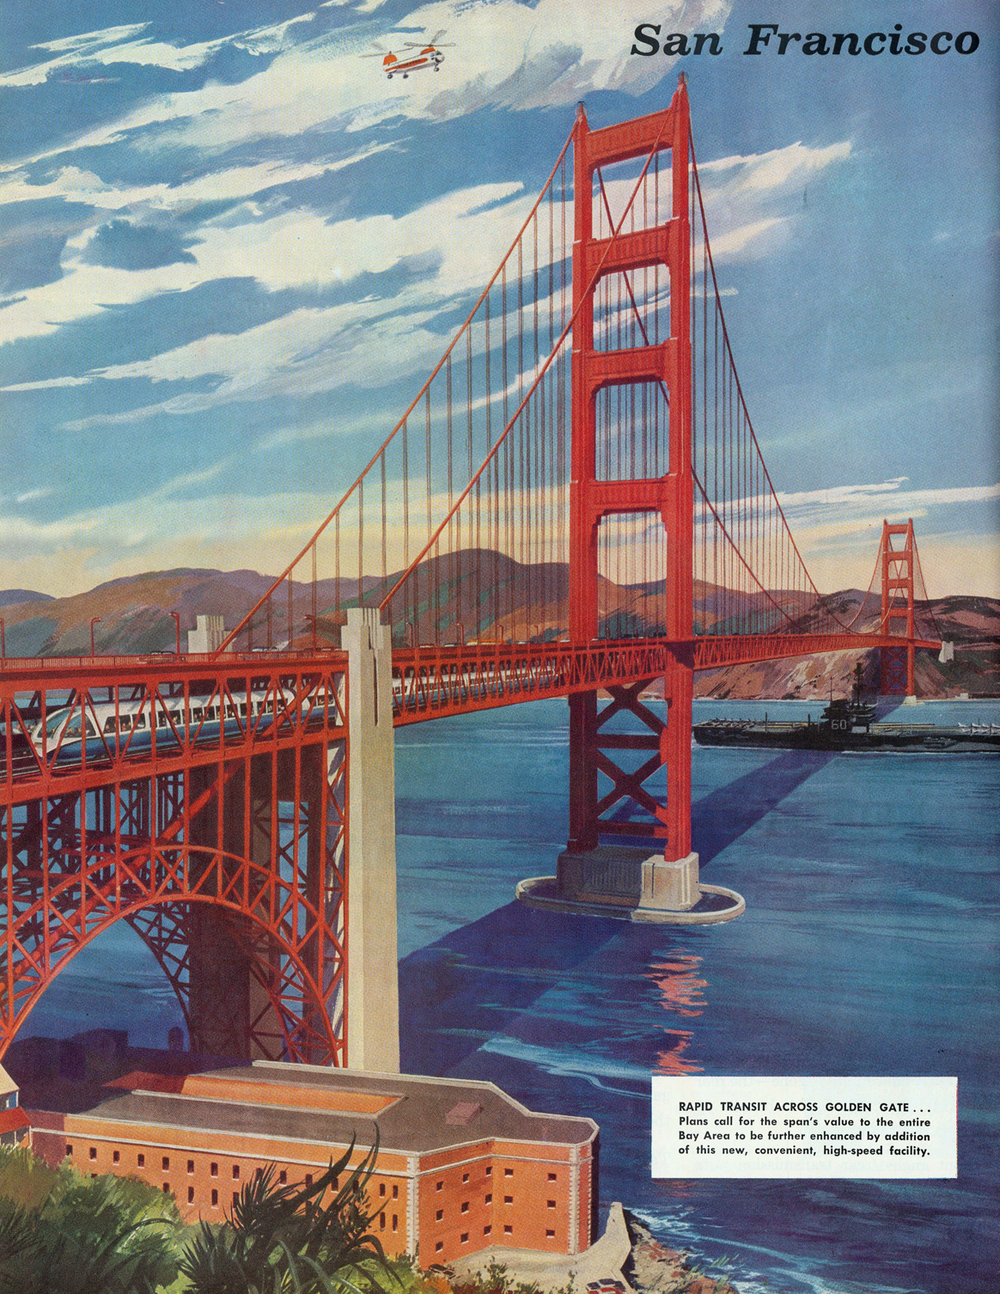 Plan to run BART on a new lower deck of Golden Gate Bridge (1955-1961)